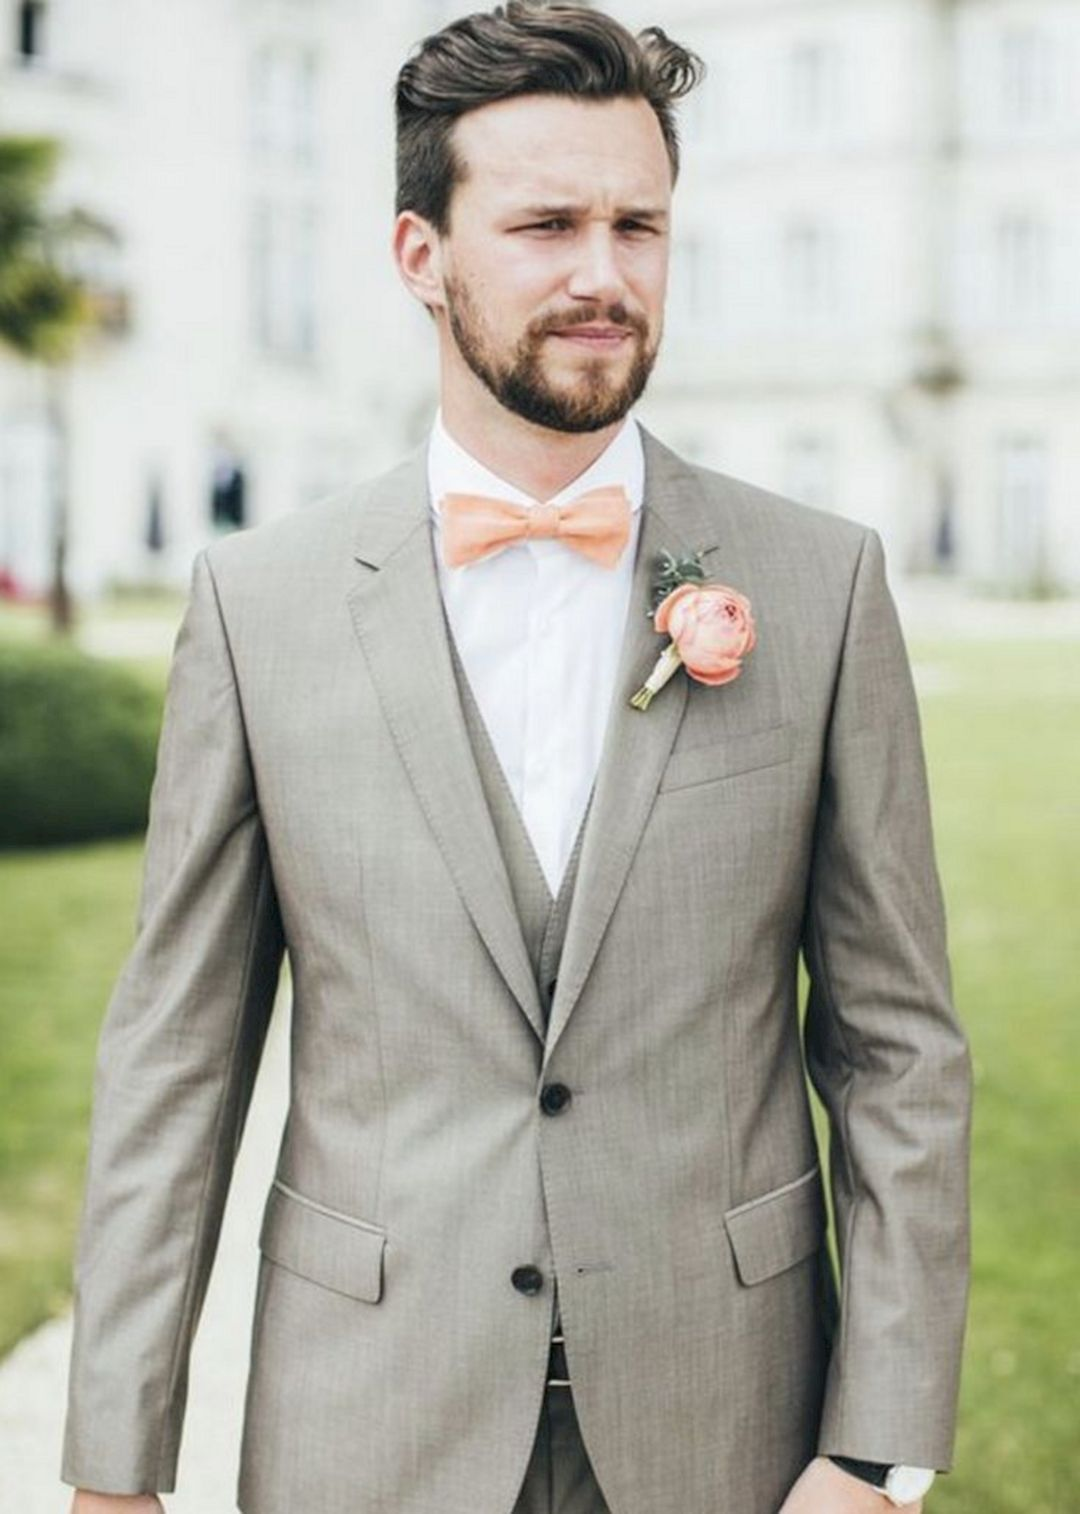 20 Top Style Wedding Groom Suits Ideas You Need to Copy